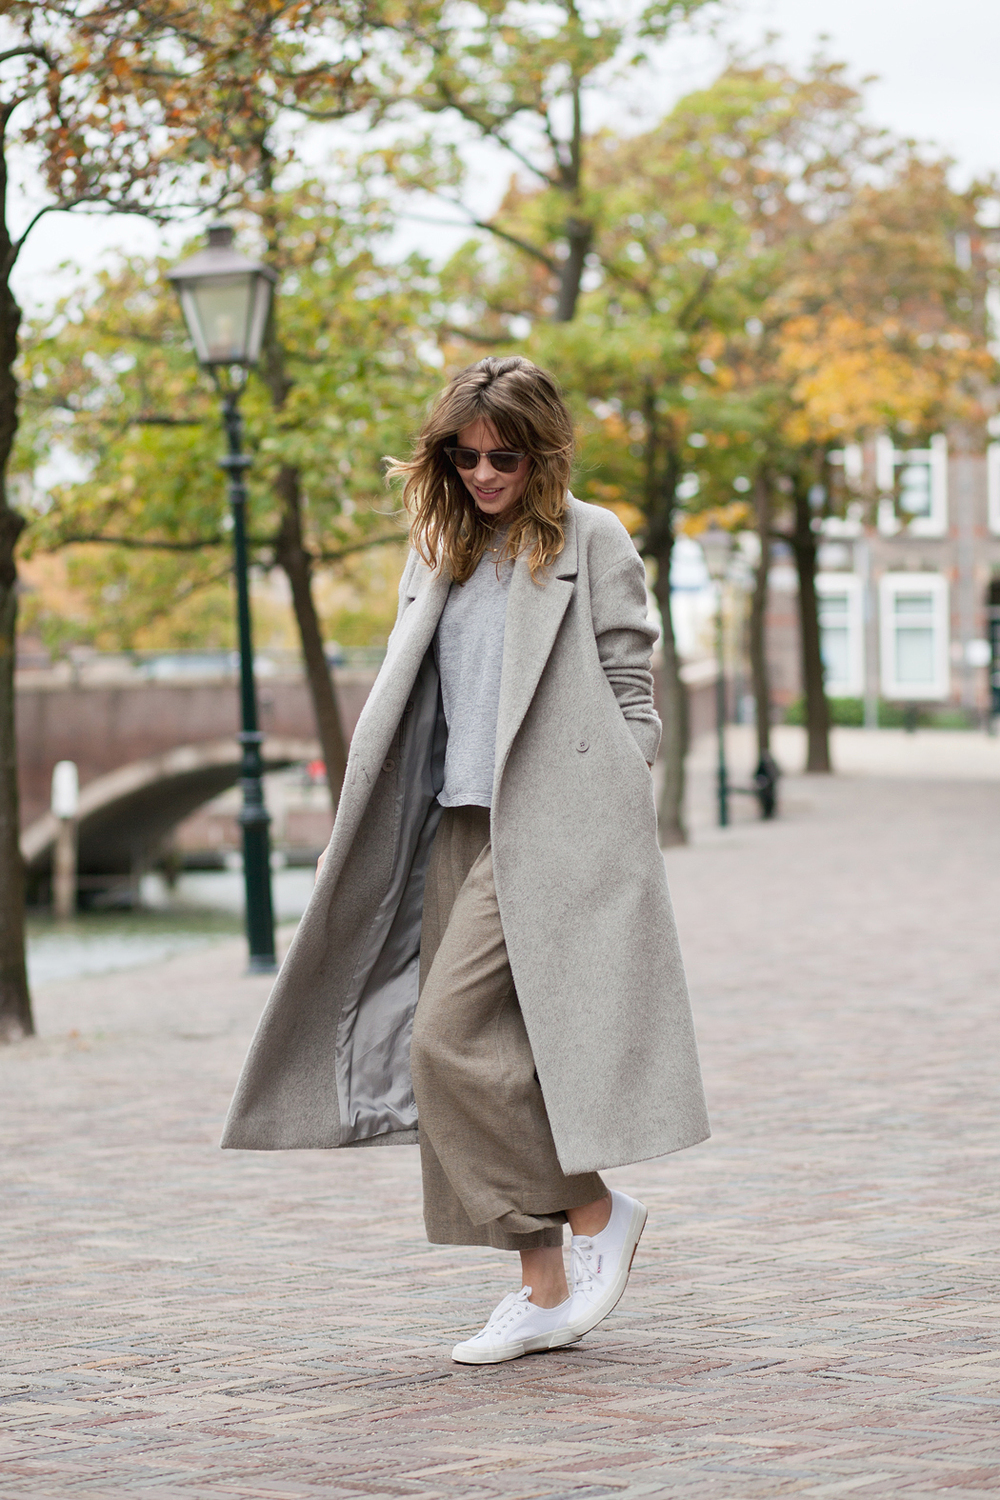 Christine R. is in a light grey long coat from COS